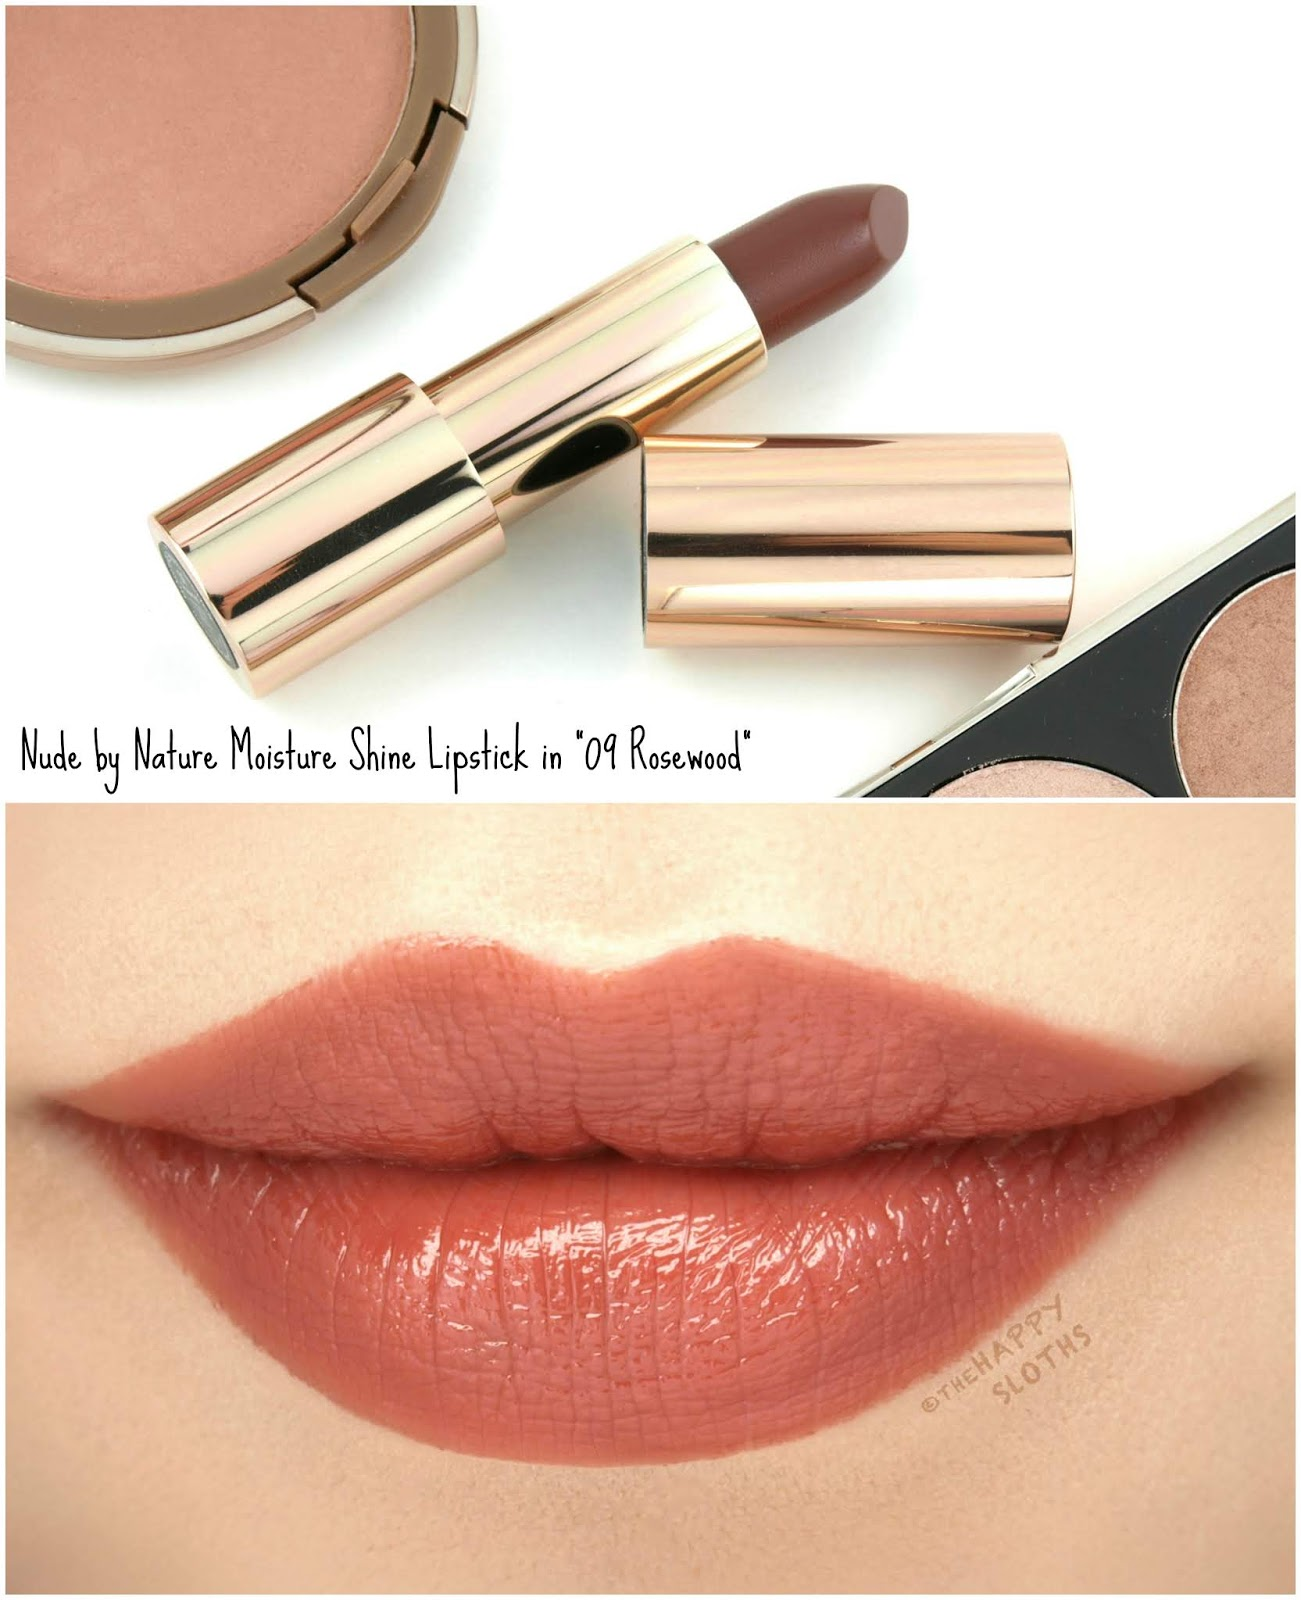 "Nude by Nature | Moisture Shine Lipstick in ""09 Rosewood"": Review and Swatches"